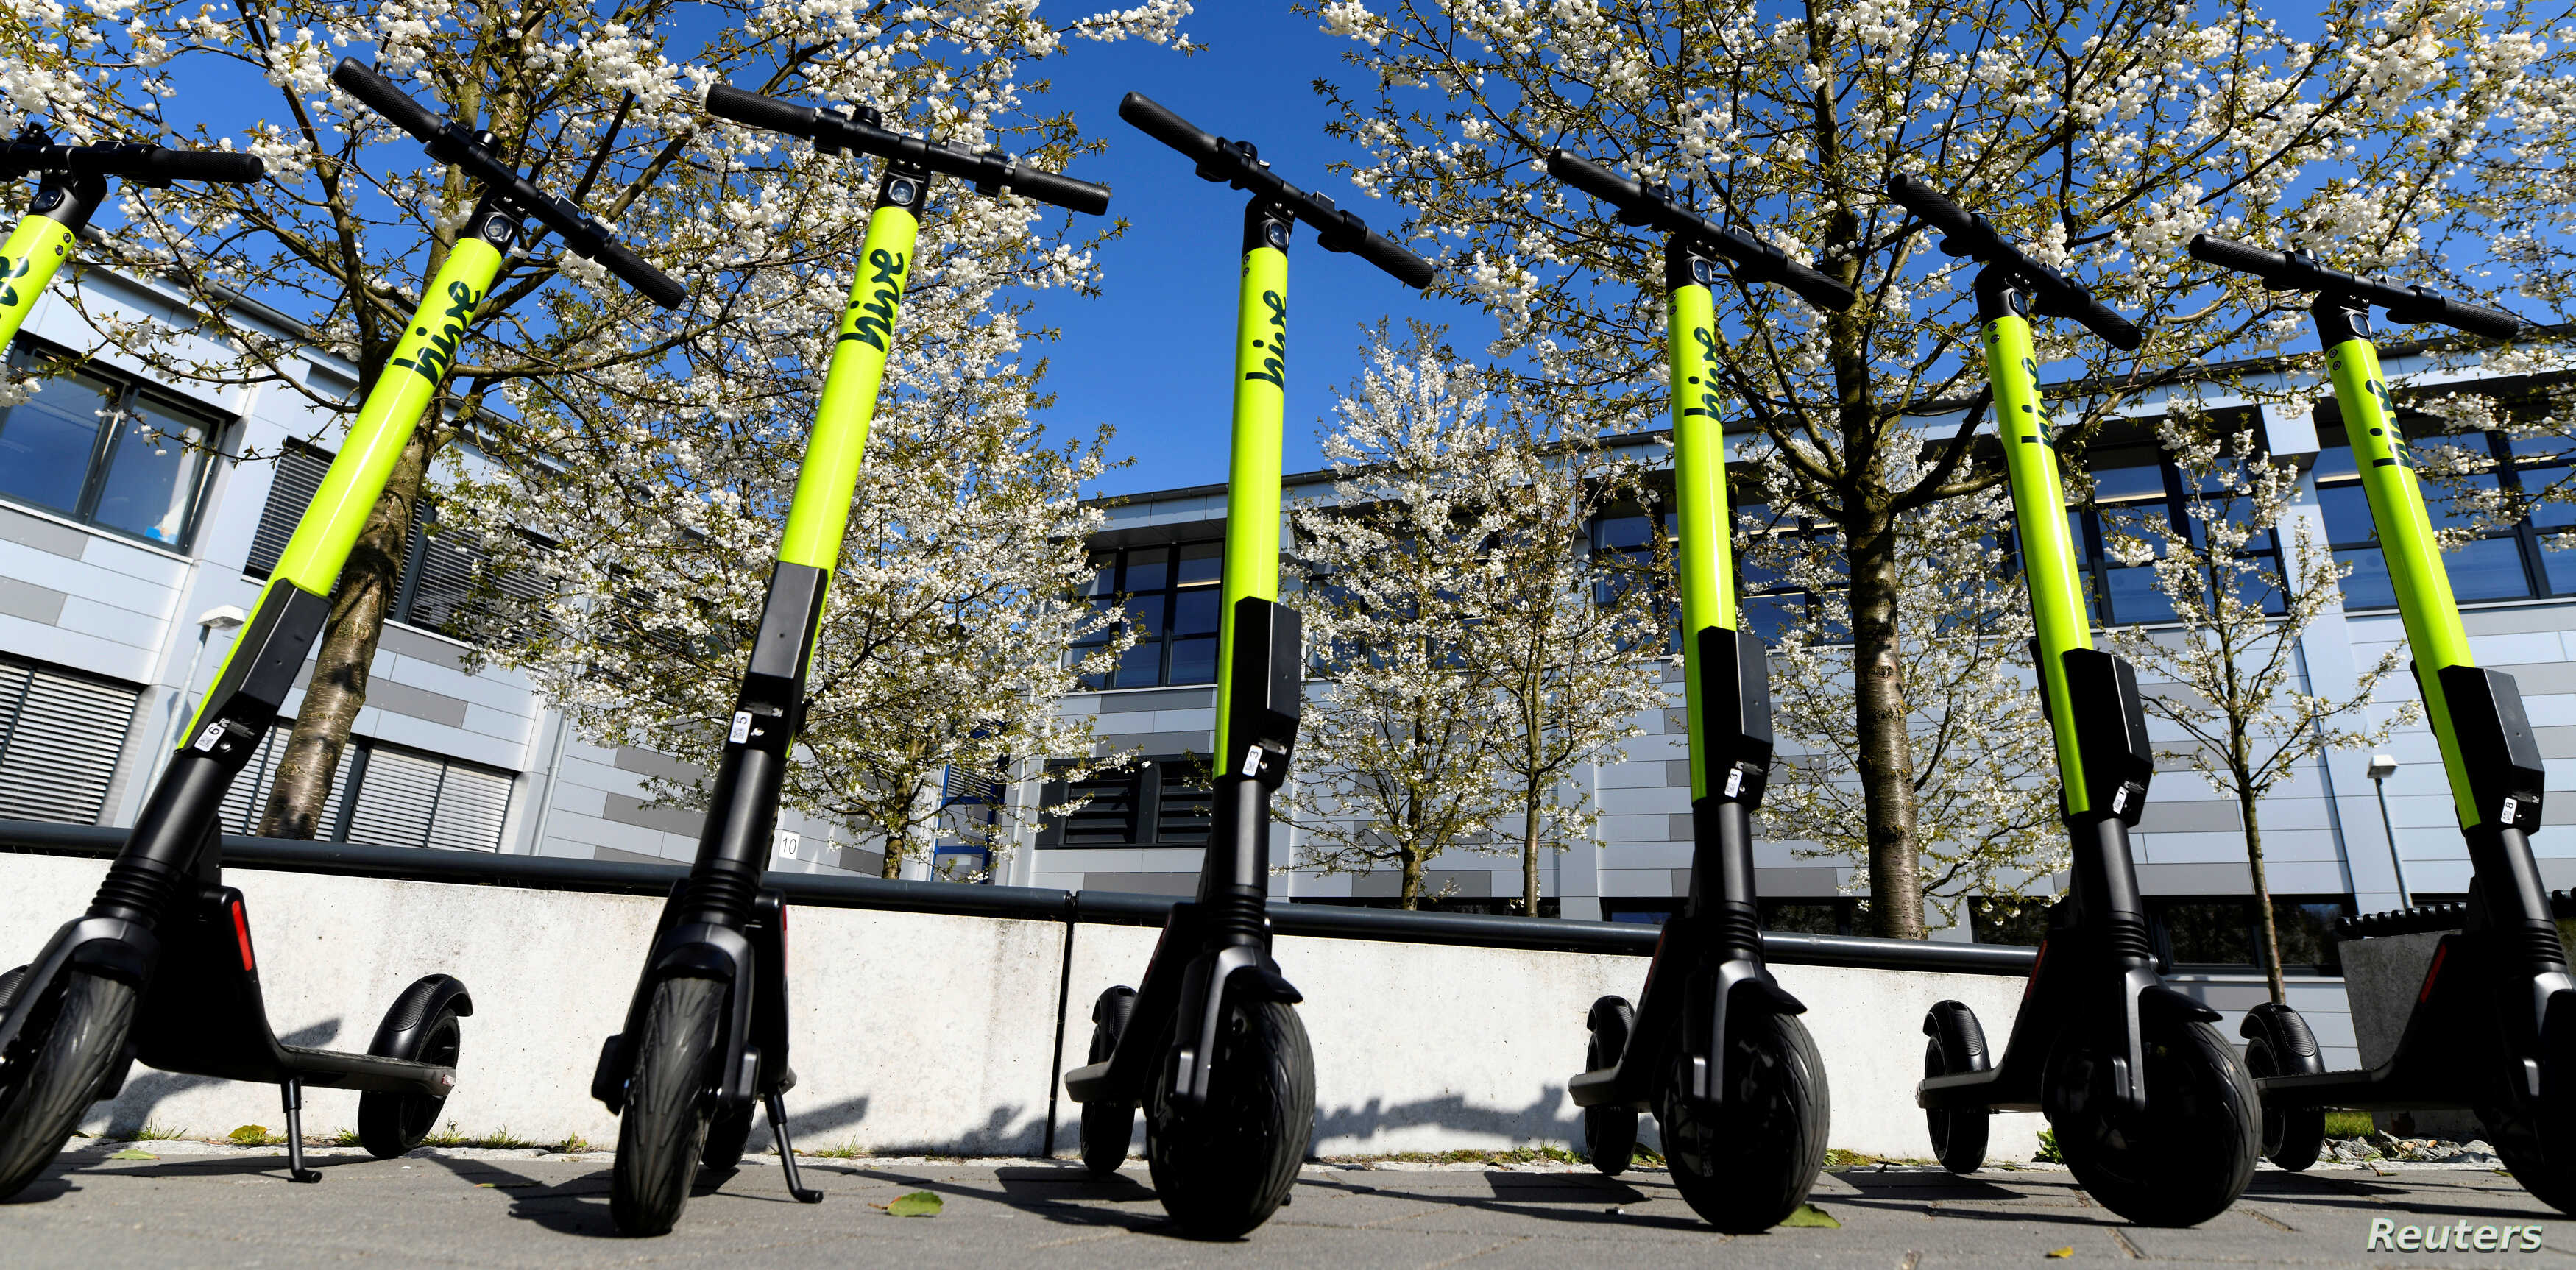 Germany Green Lights E Scooters On Roads Not Pavements Voice Of America English